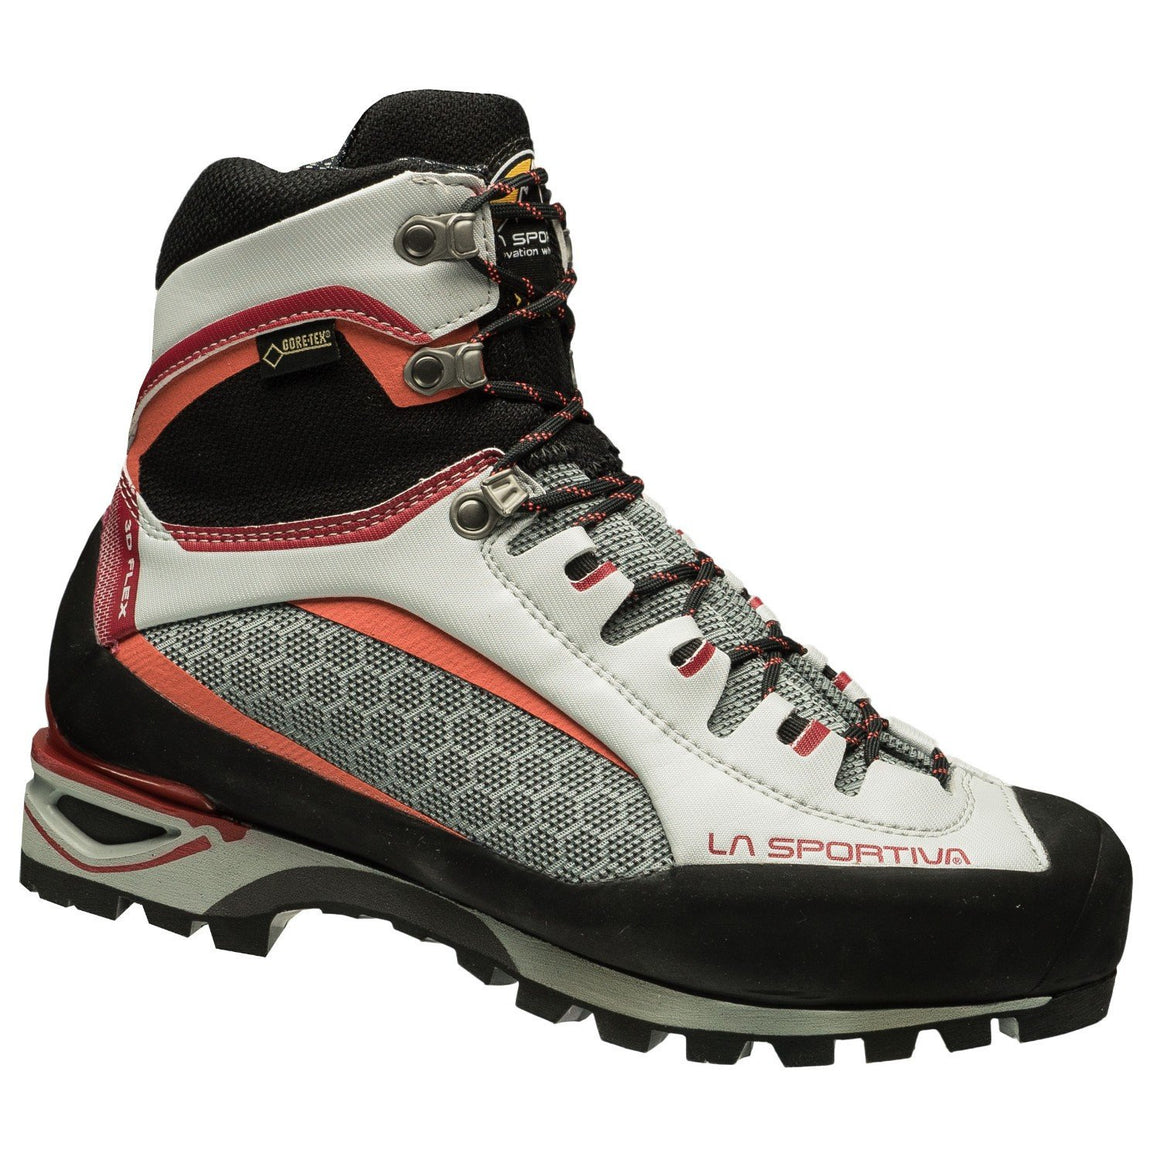 La Sportiva Trango Tower GTX Womens mountaineering boot, black grey and red